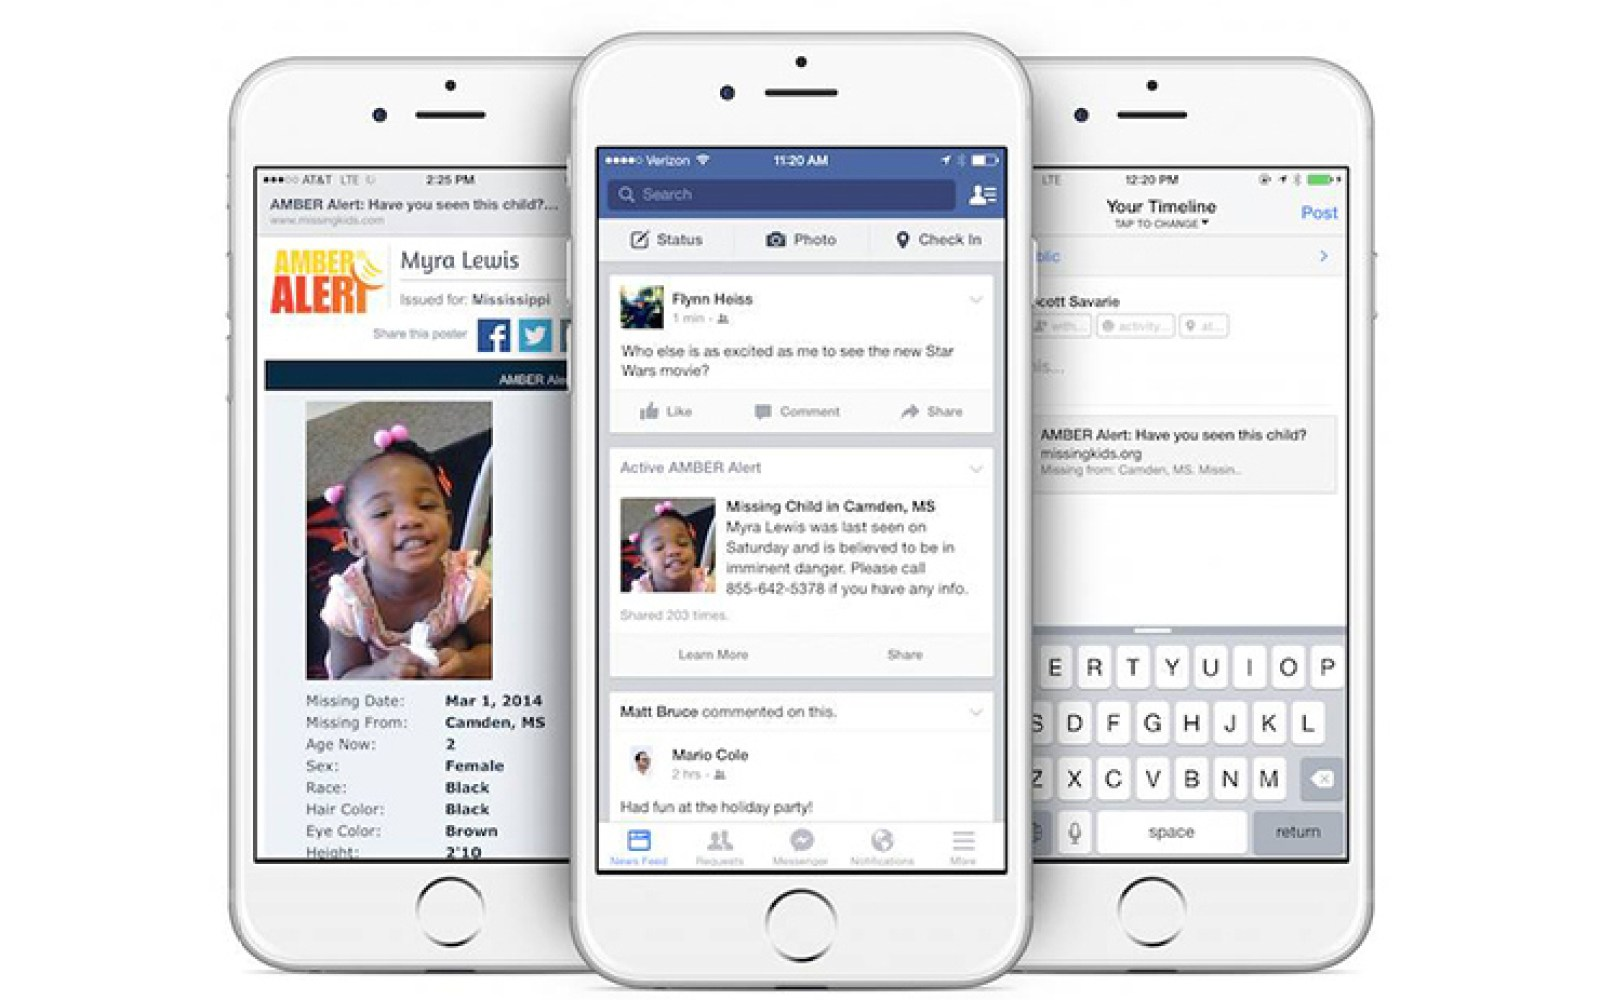 Facebook adding AMBER Alerts to its mobile apps and web